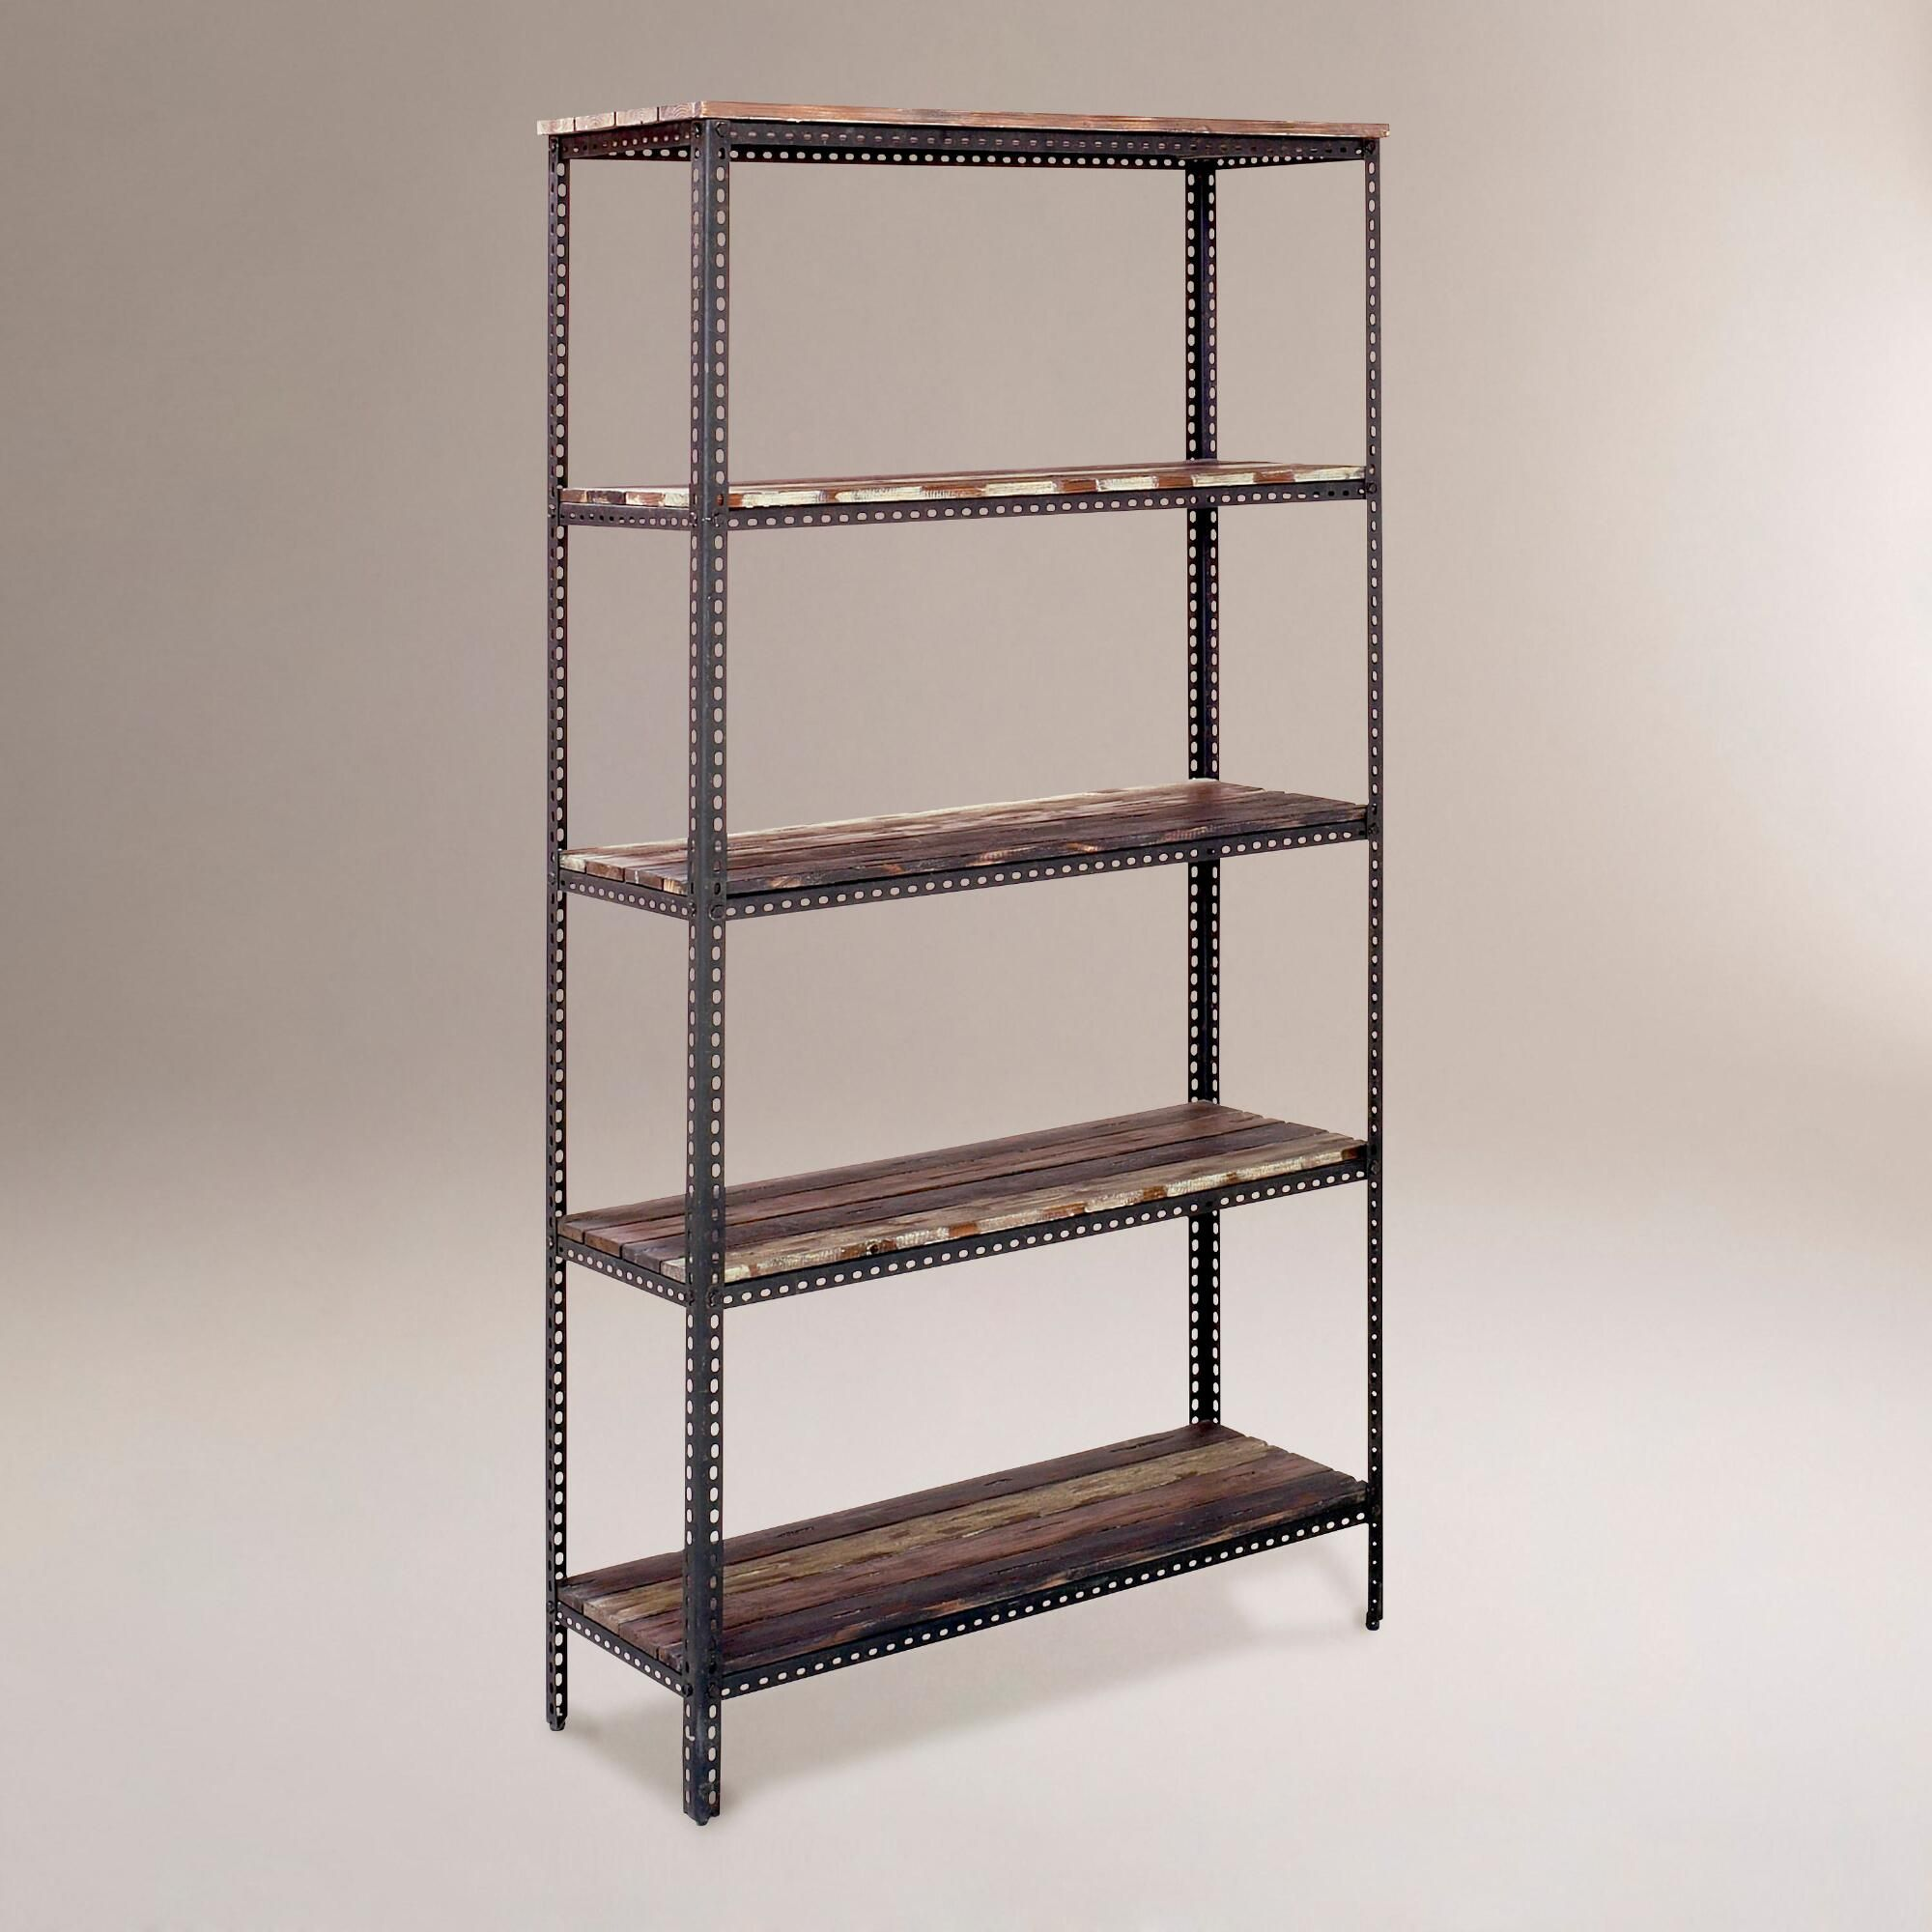 4-Shelf Industrial Metal Shelf | Metal shelves, Industrial metal ...